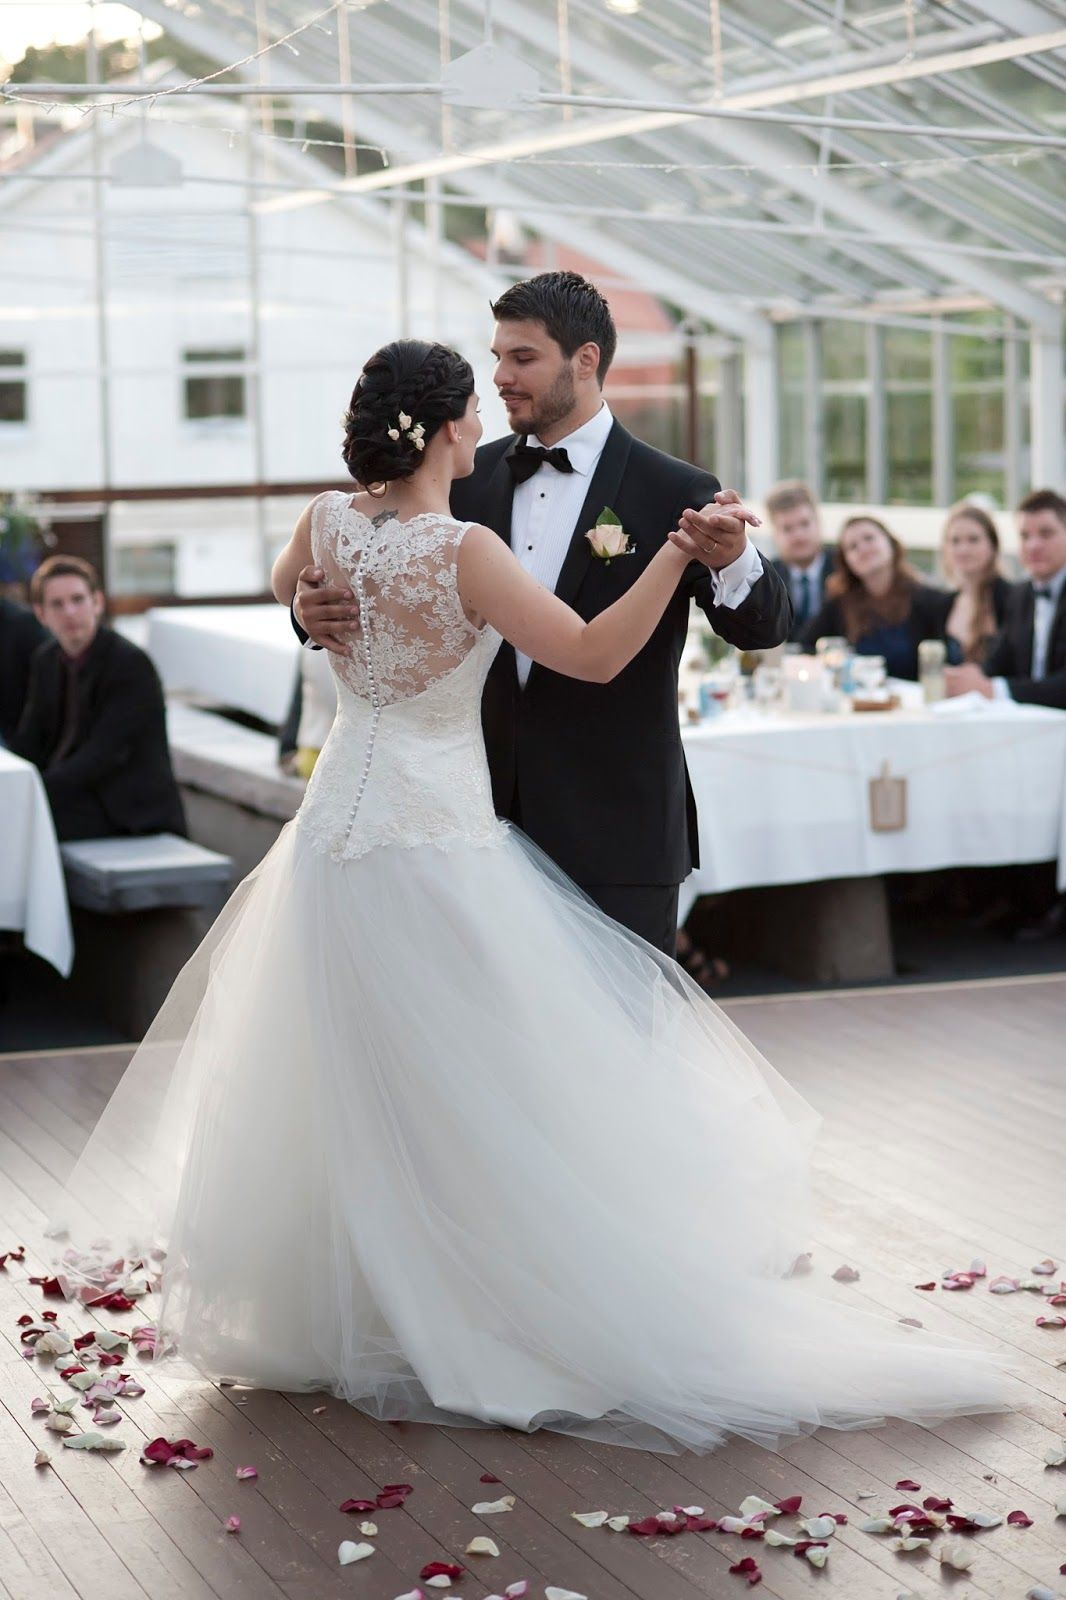 Real wedding in Finland. Dress made by Pukuni (www.pukuni.fi). Wedding dress with lace, tulle and lace back.